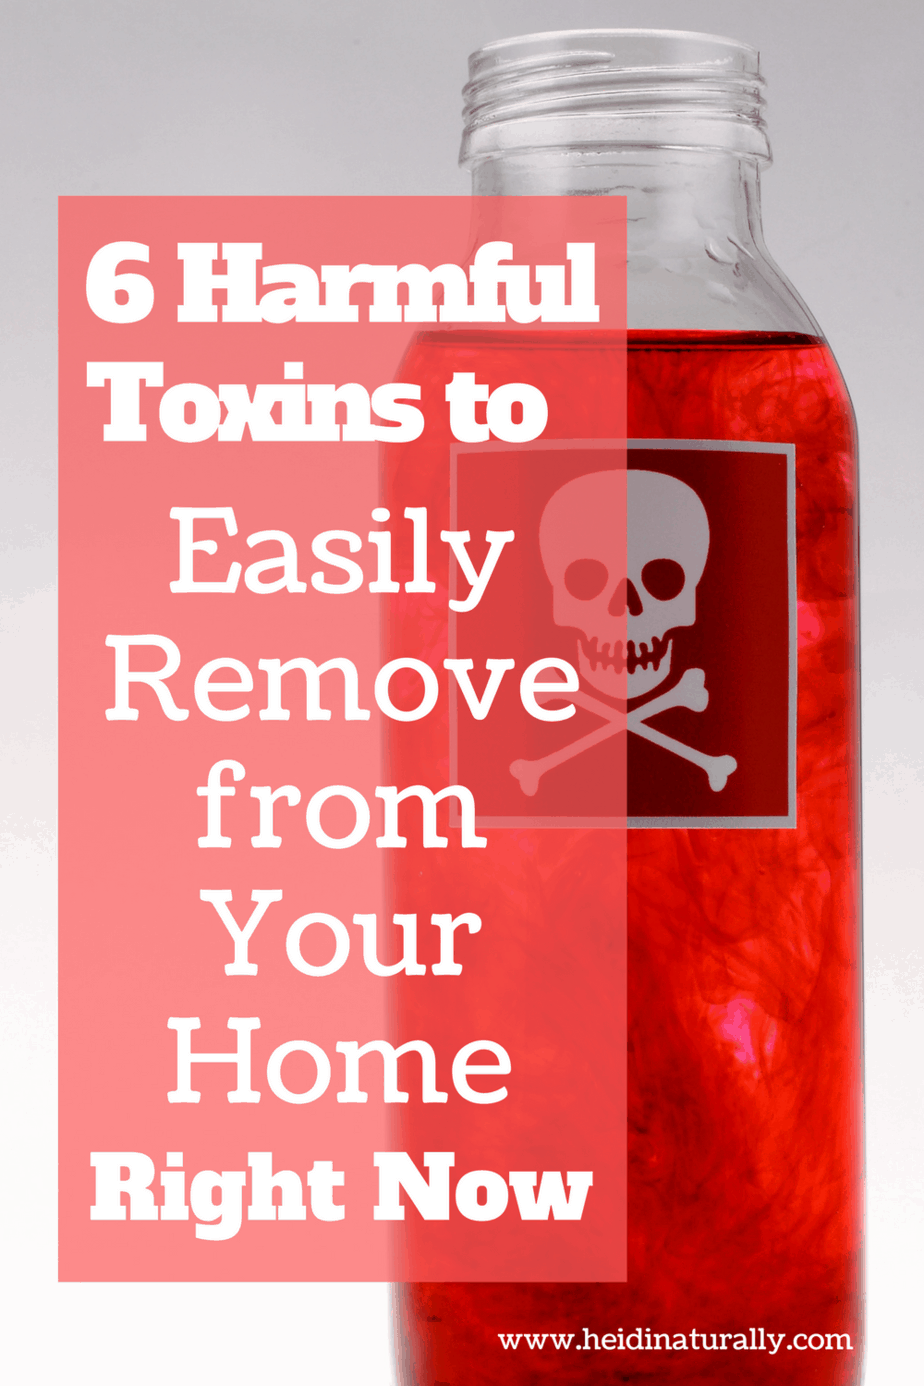 Learn the 6 harmful toxins that are easy to remove & swap out for healthier alternatives. Learn what to use instead and protect your family.